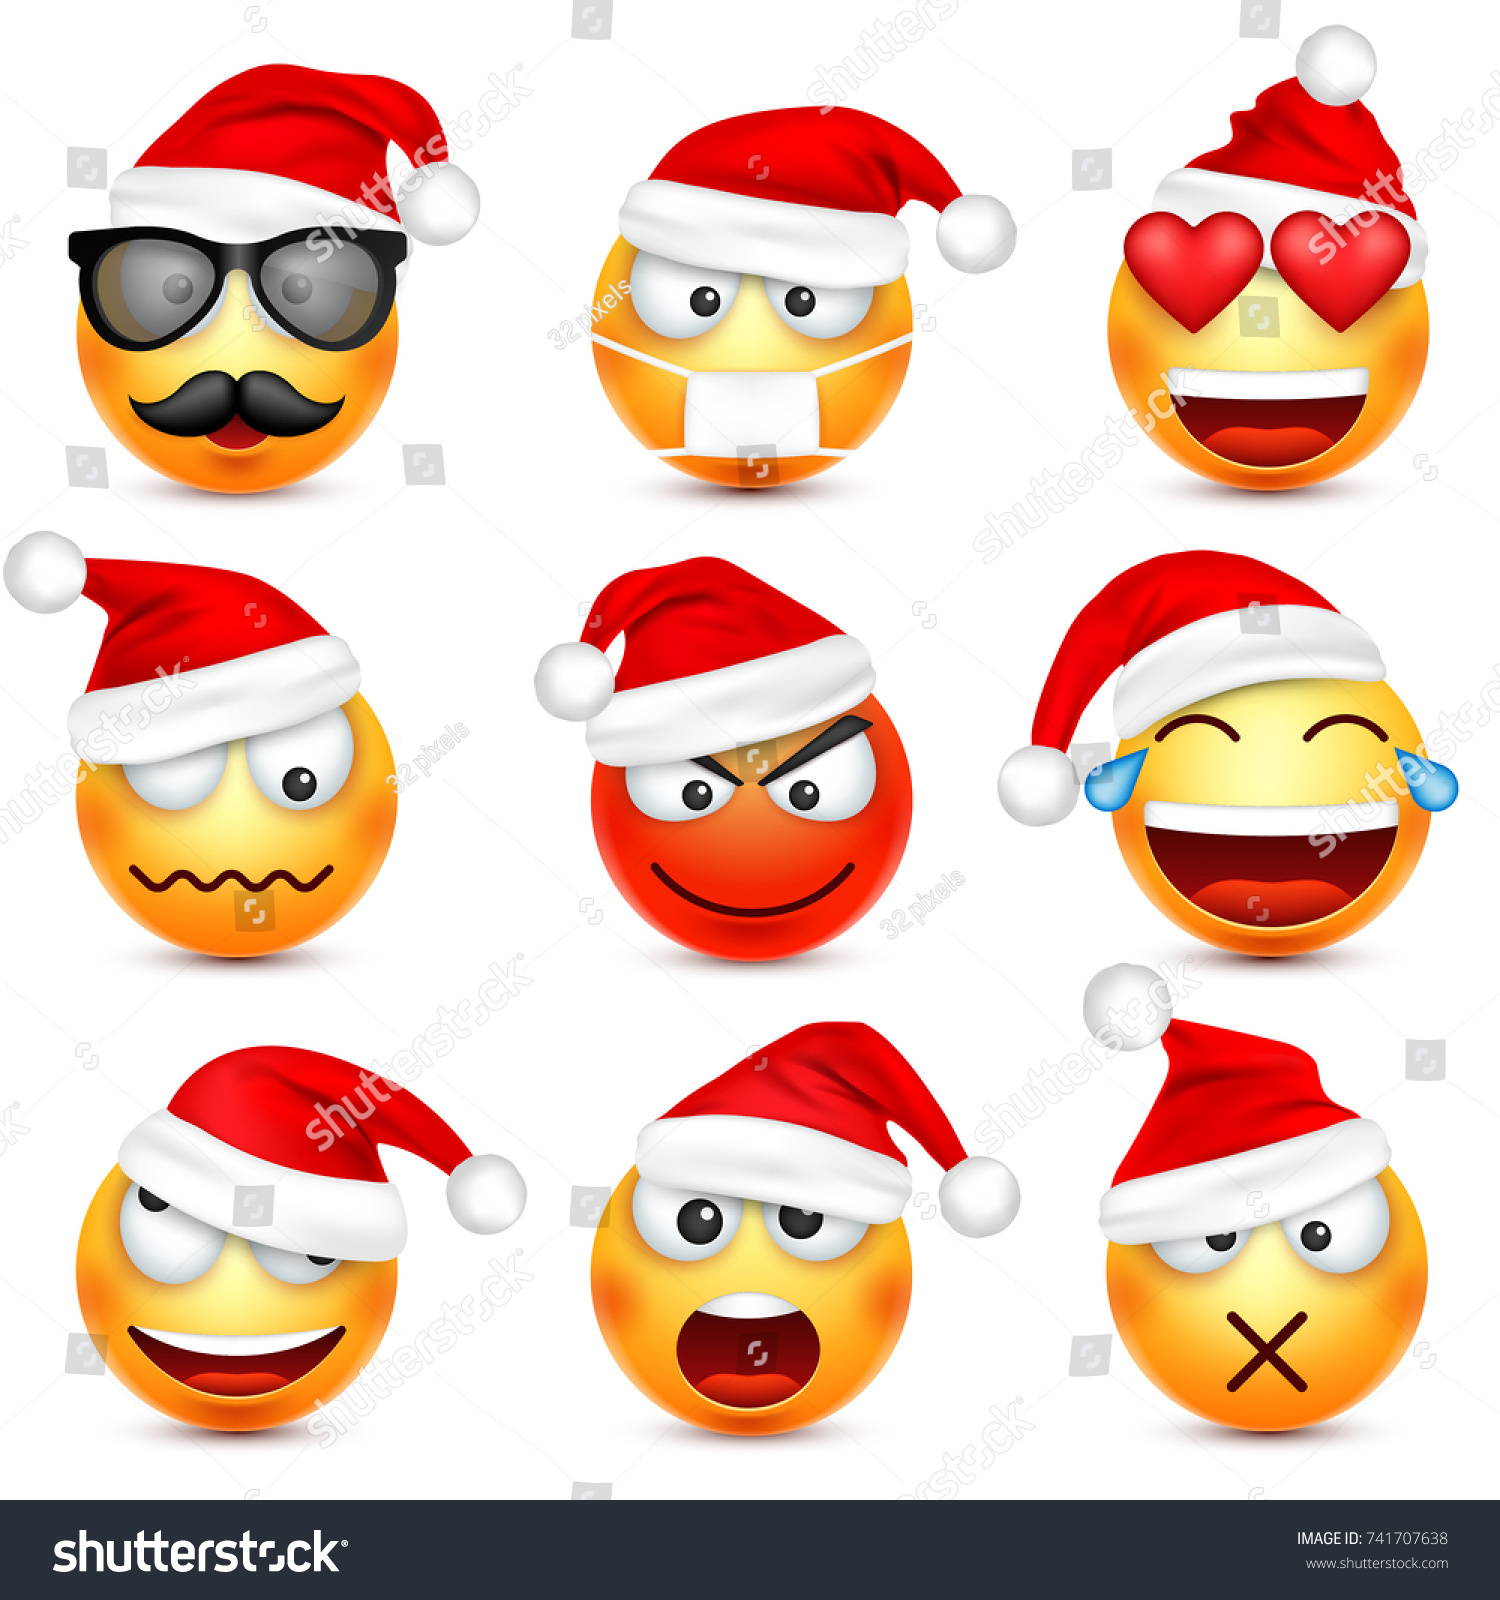 smileyemoticon set yellow face with emotions and christmas hat new year - Christmas Smiley Faces